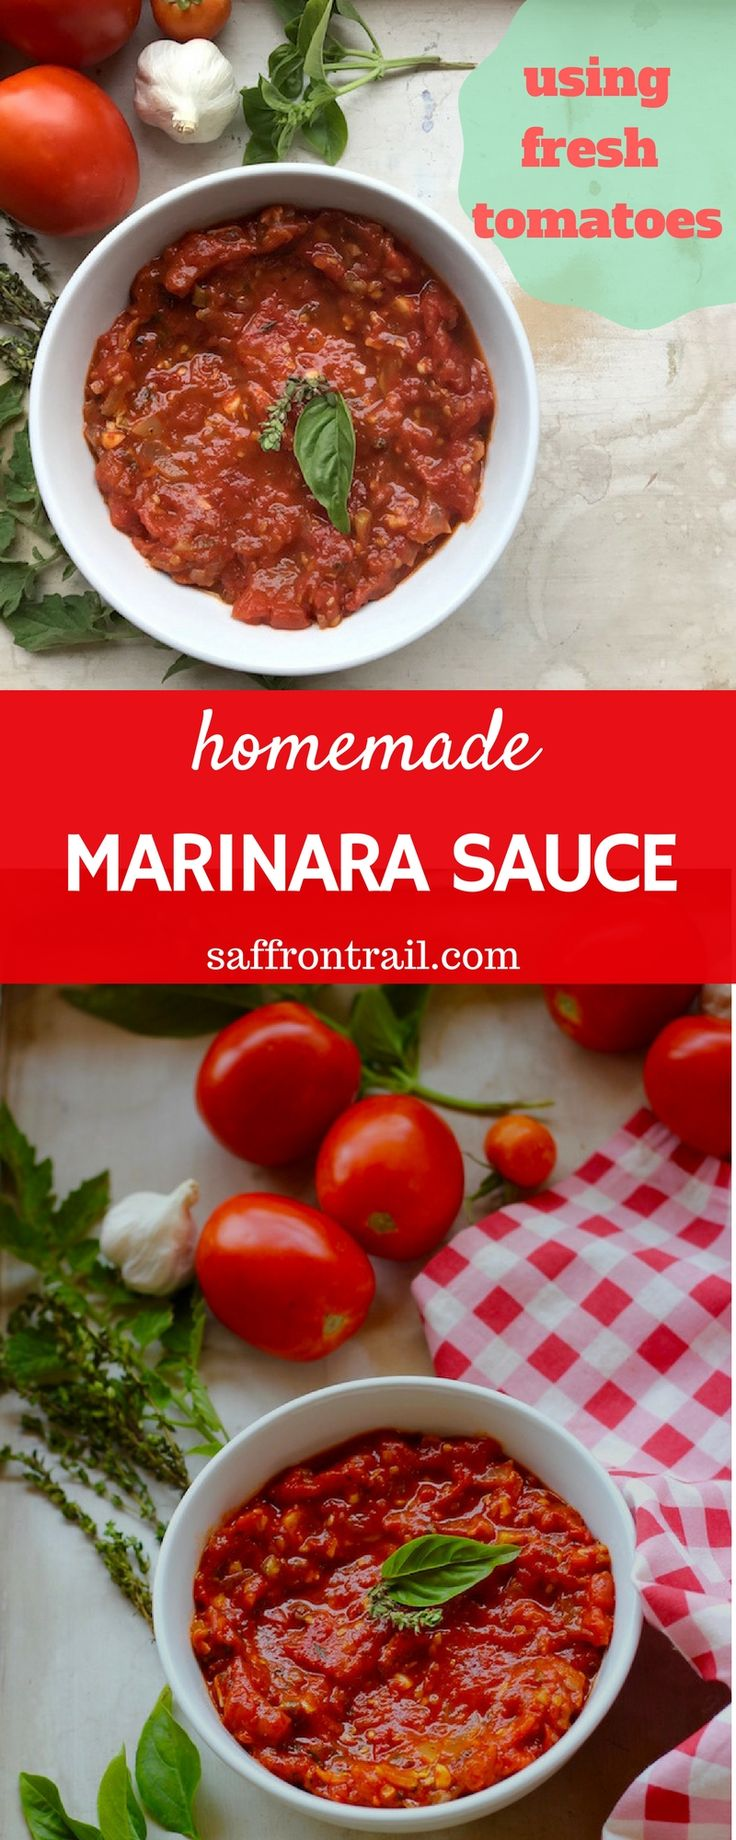 Homemade marinara sauce from scratch using fresh tomatoes - make a bottle or two and weeknight pasta meal is sorted!